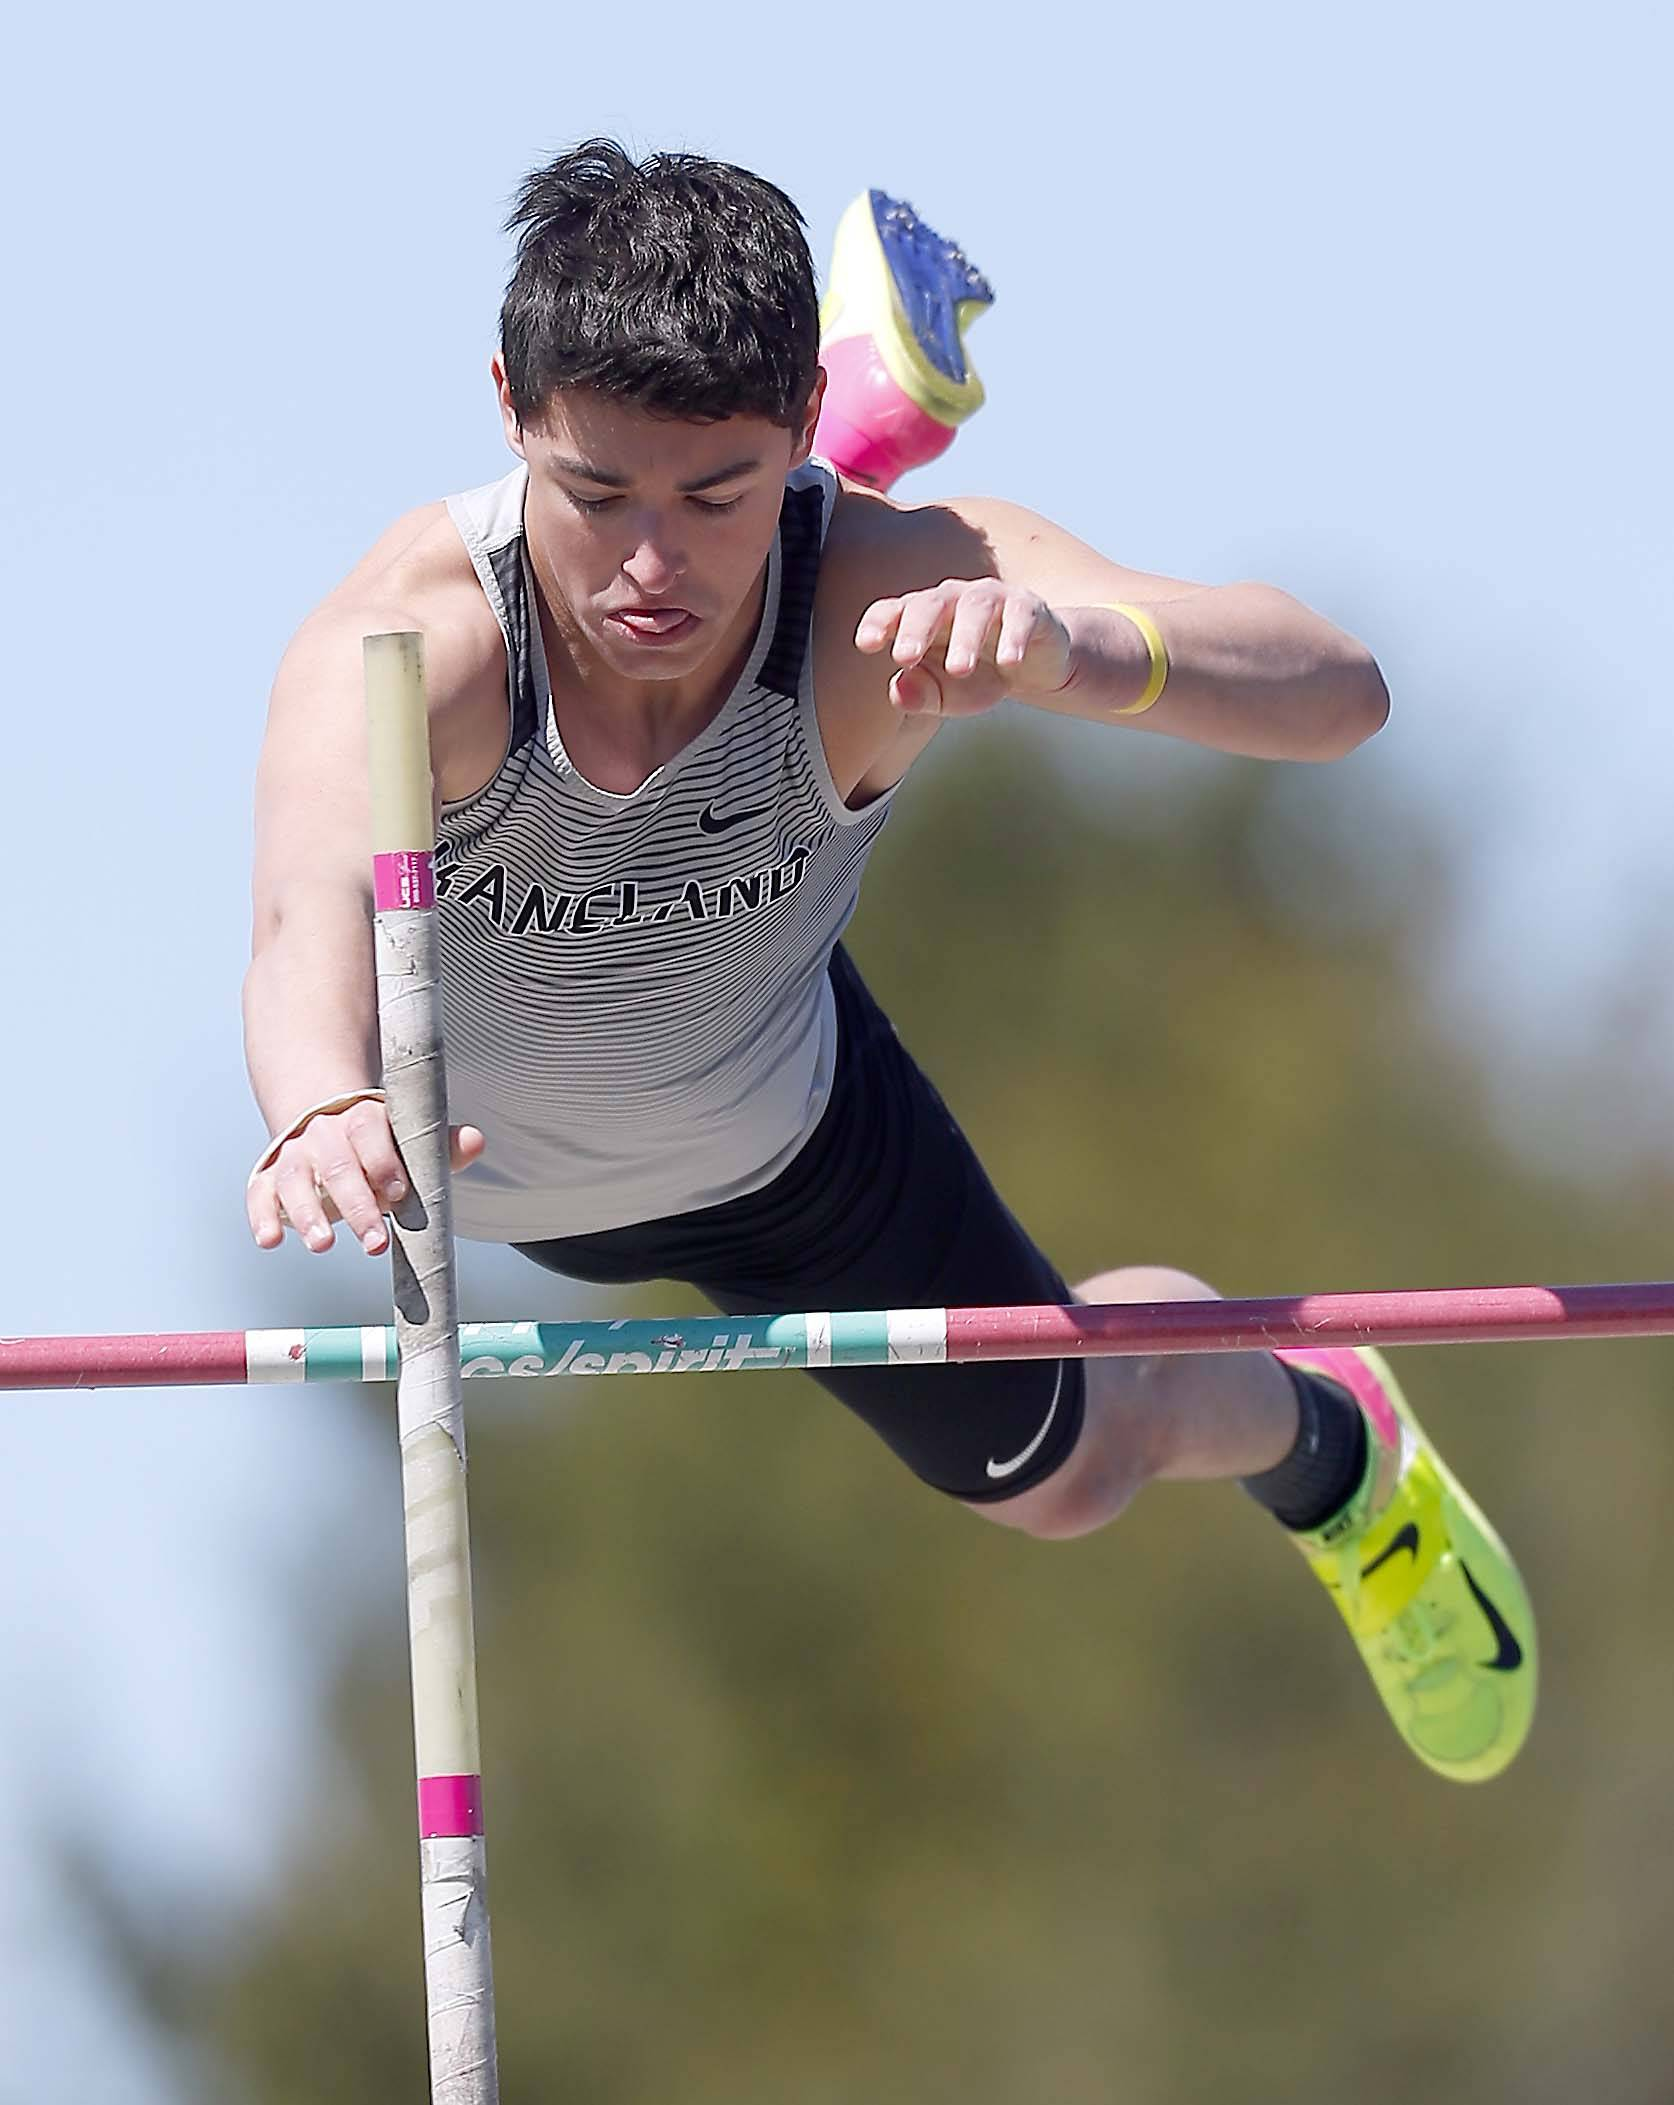 Nate Bermes of Kaneland in the pole vault Saturday at the Kaneland Peterson Prep Track Meet in Maple Park.